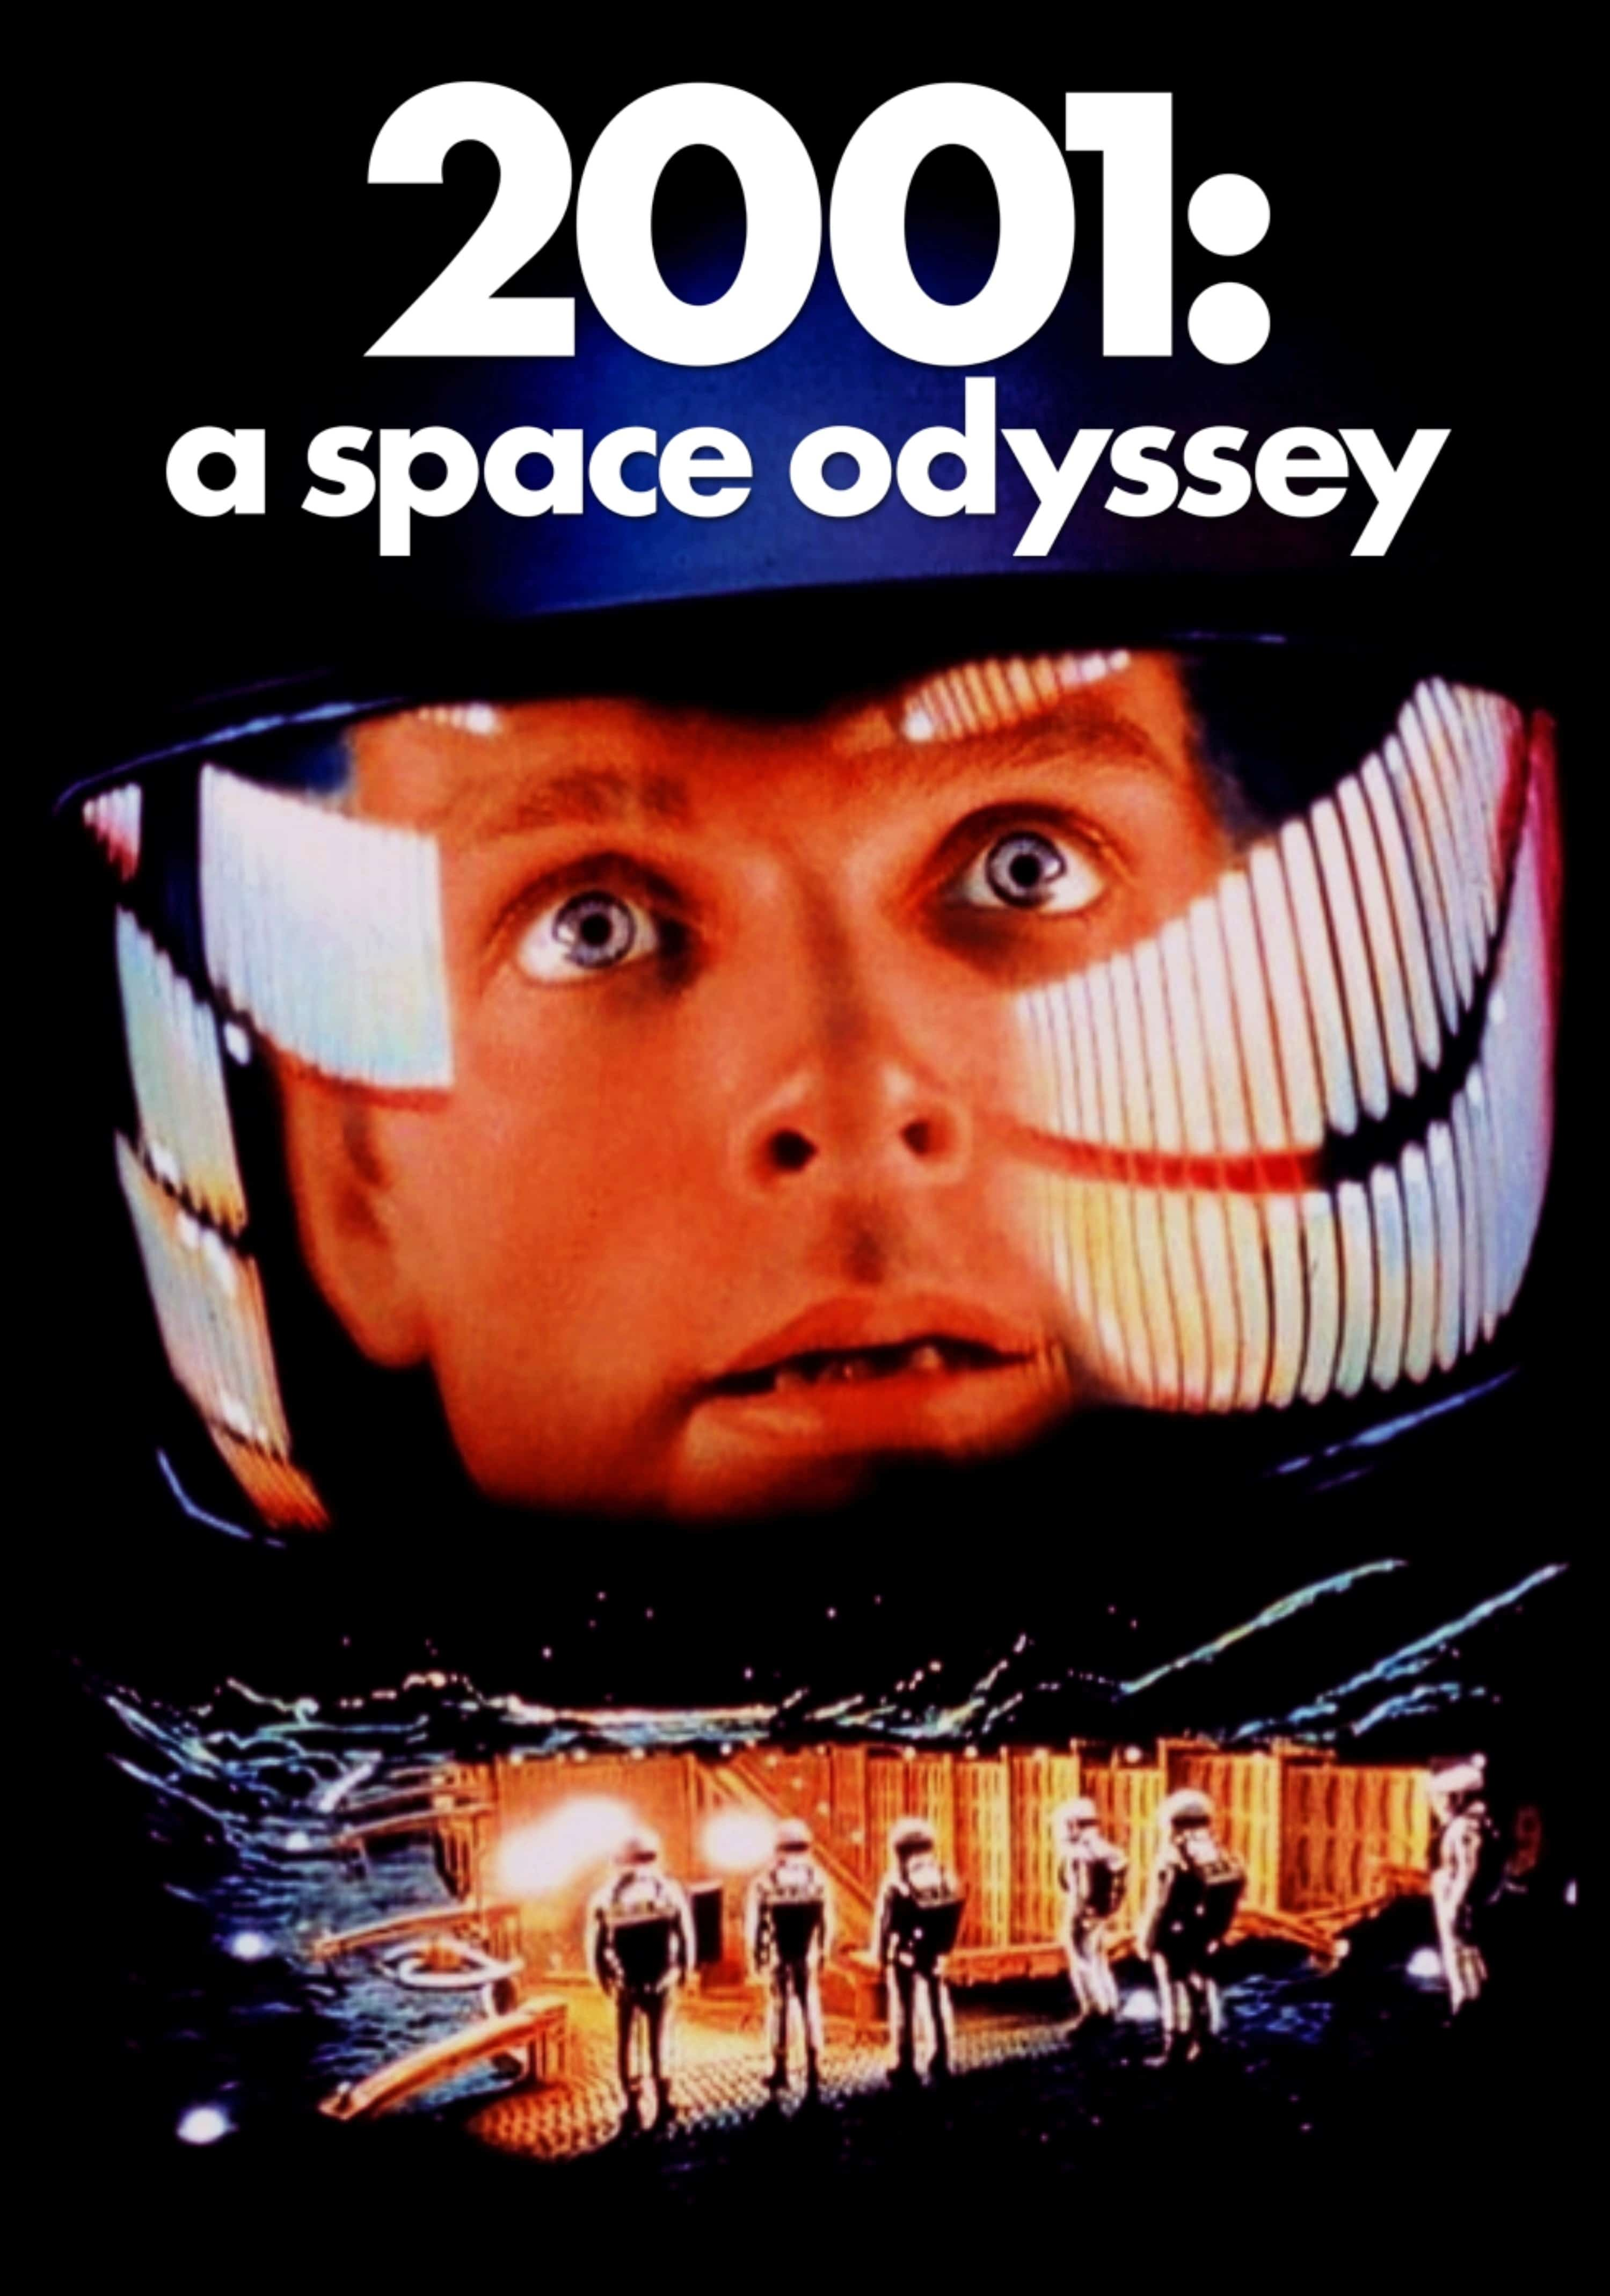 2001 A Space Odyssey Dvd Cover Art